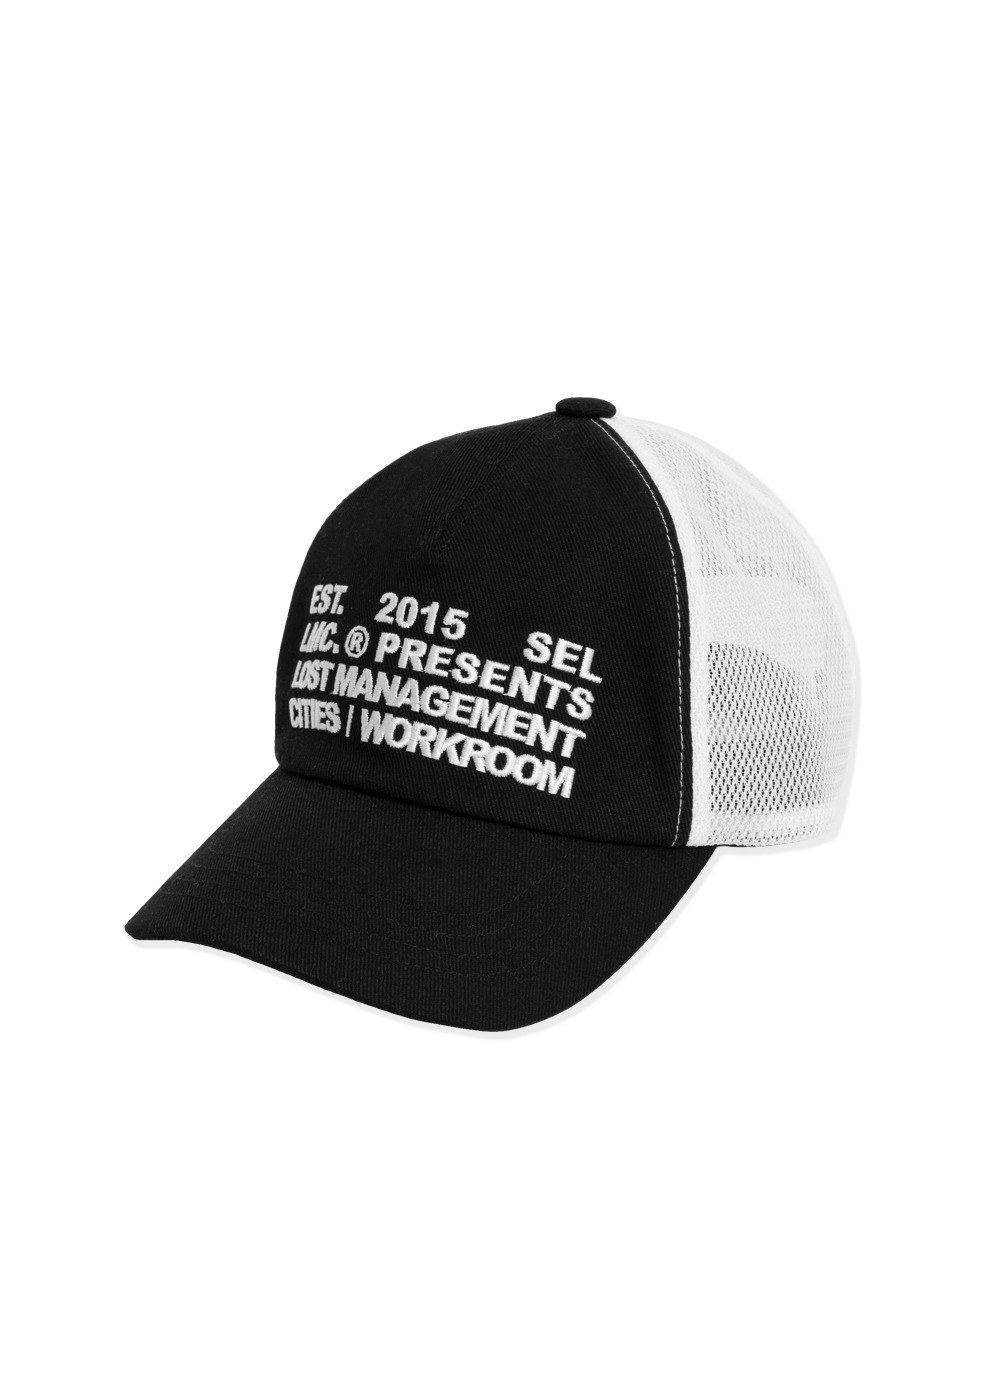 LMC WORKROOM MESH BALL CAP black